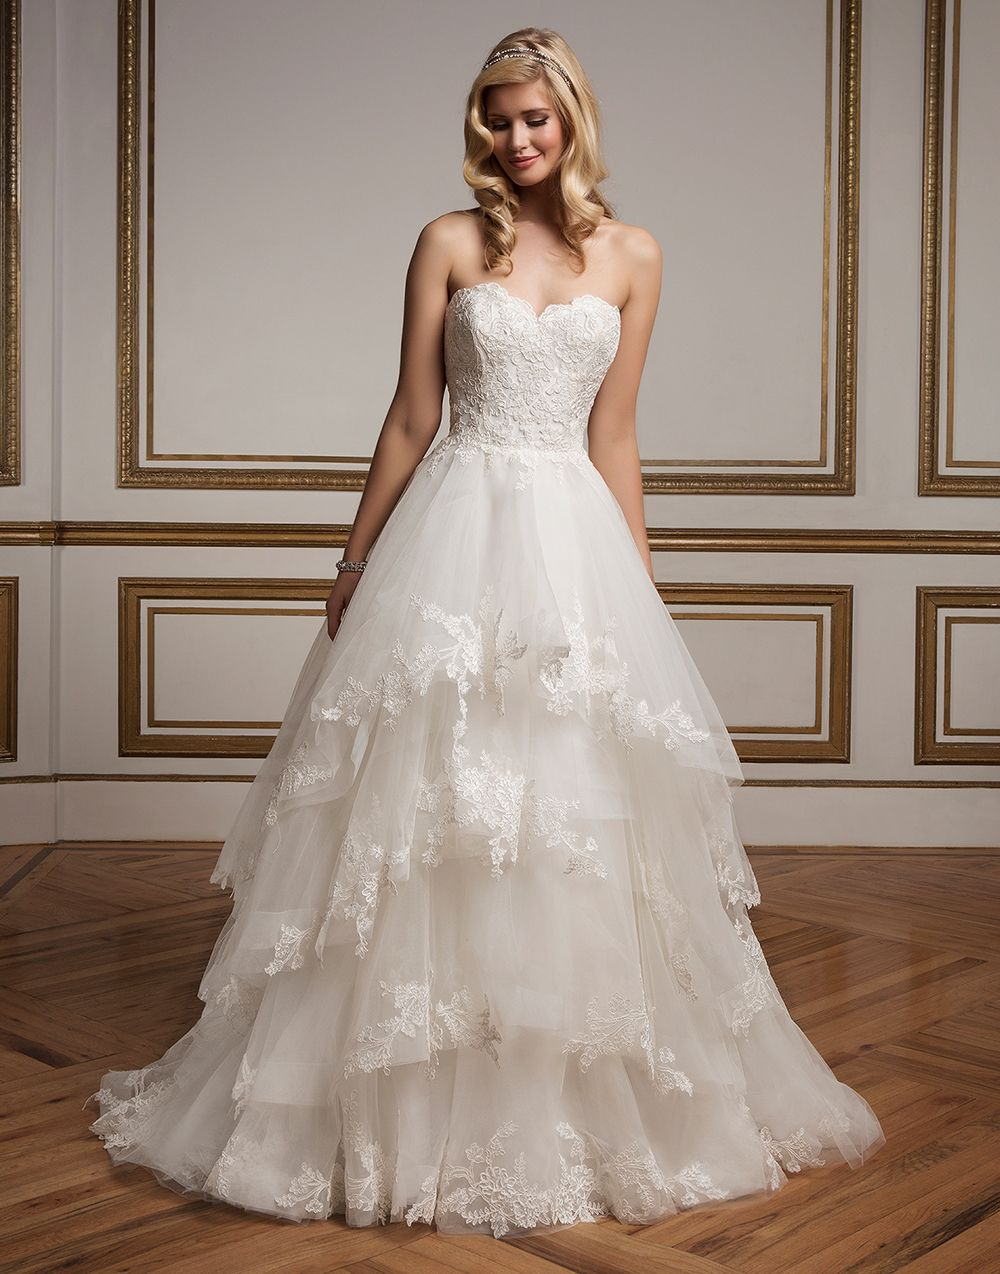 A sophisticated tulle tiered ball gown with sweetheart Alencon lace bodice. The full tulle skirt is accented with lace appliques and is finished with a chapel length train. https://www.justinalexanderbridal.com/wedding_dresses/8823